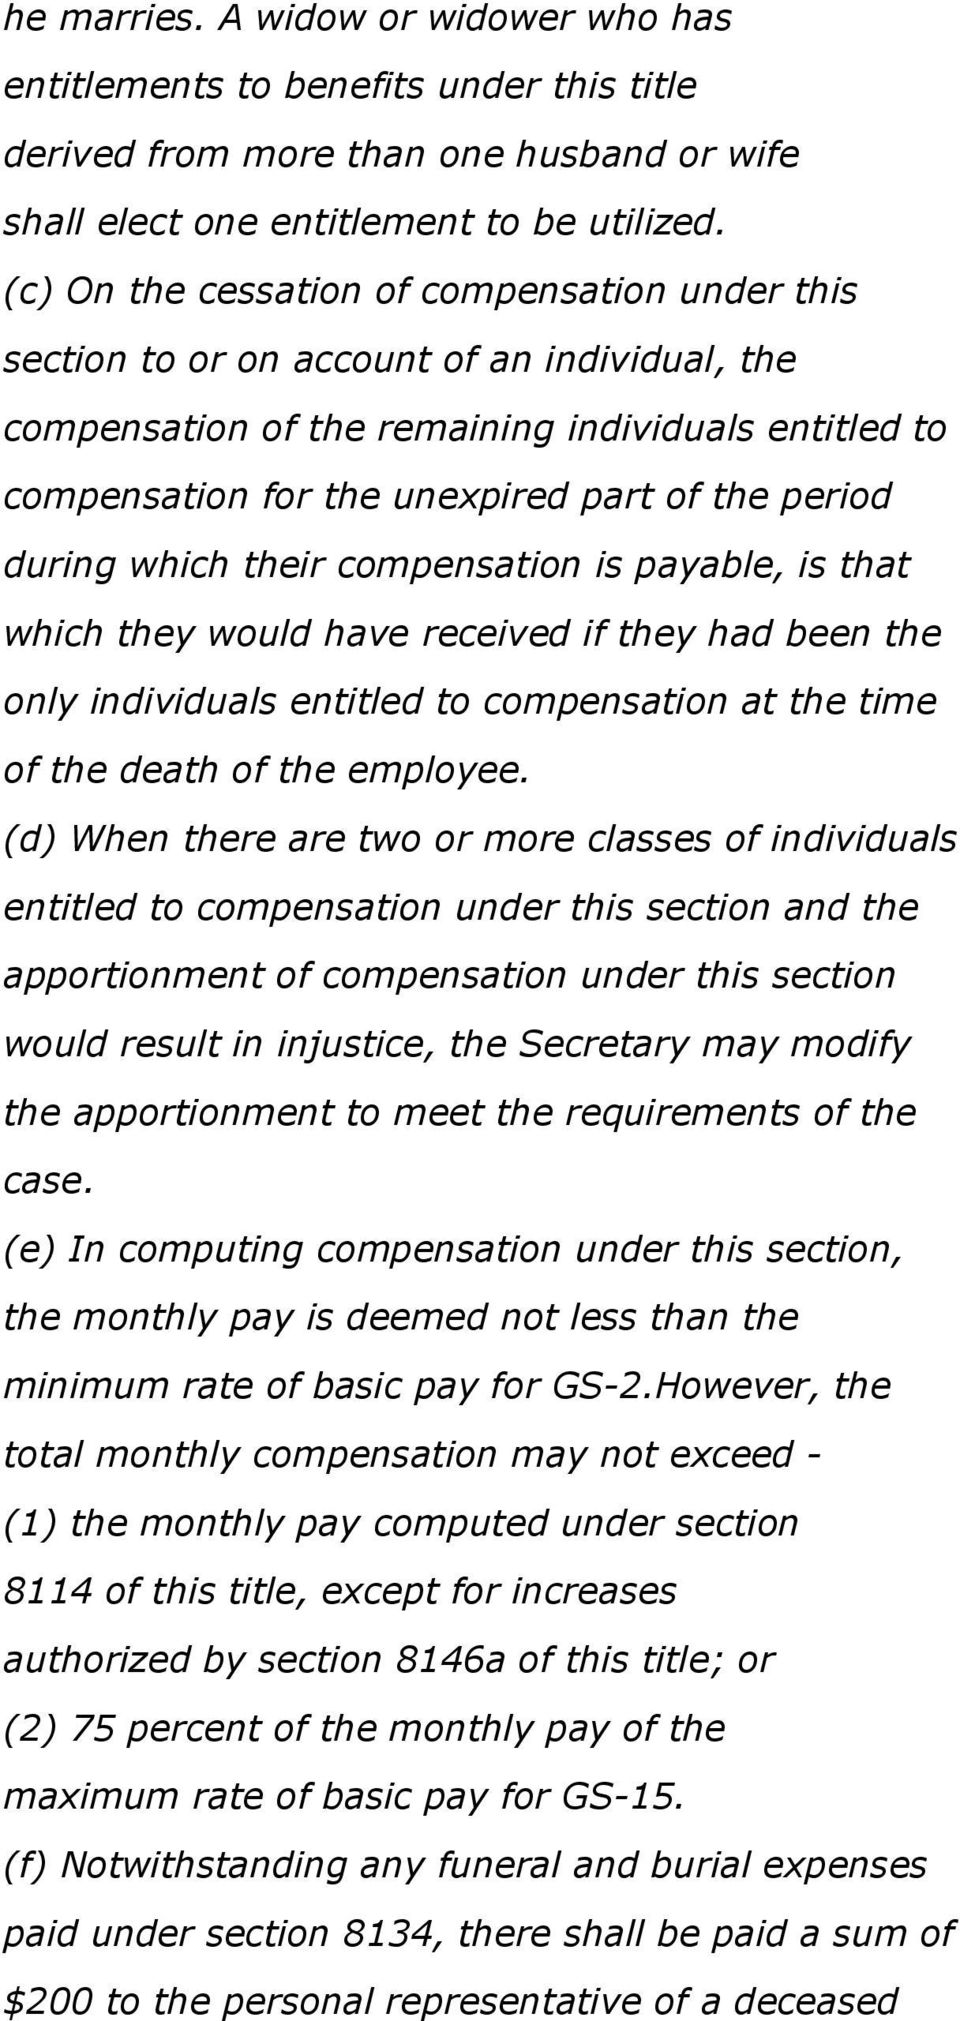 during which their compensation is payable, is that which they would have received if they had been the only individuals entitled to compensation at the time of the death of the employee.